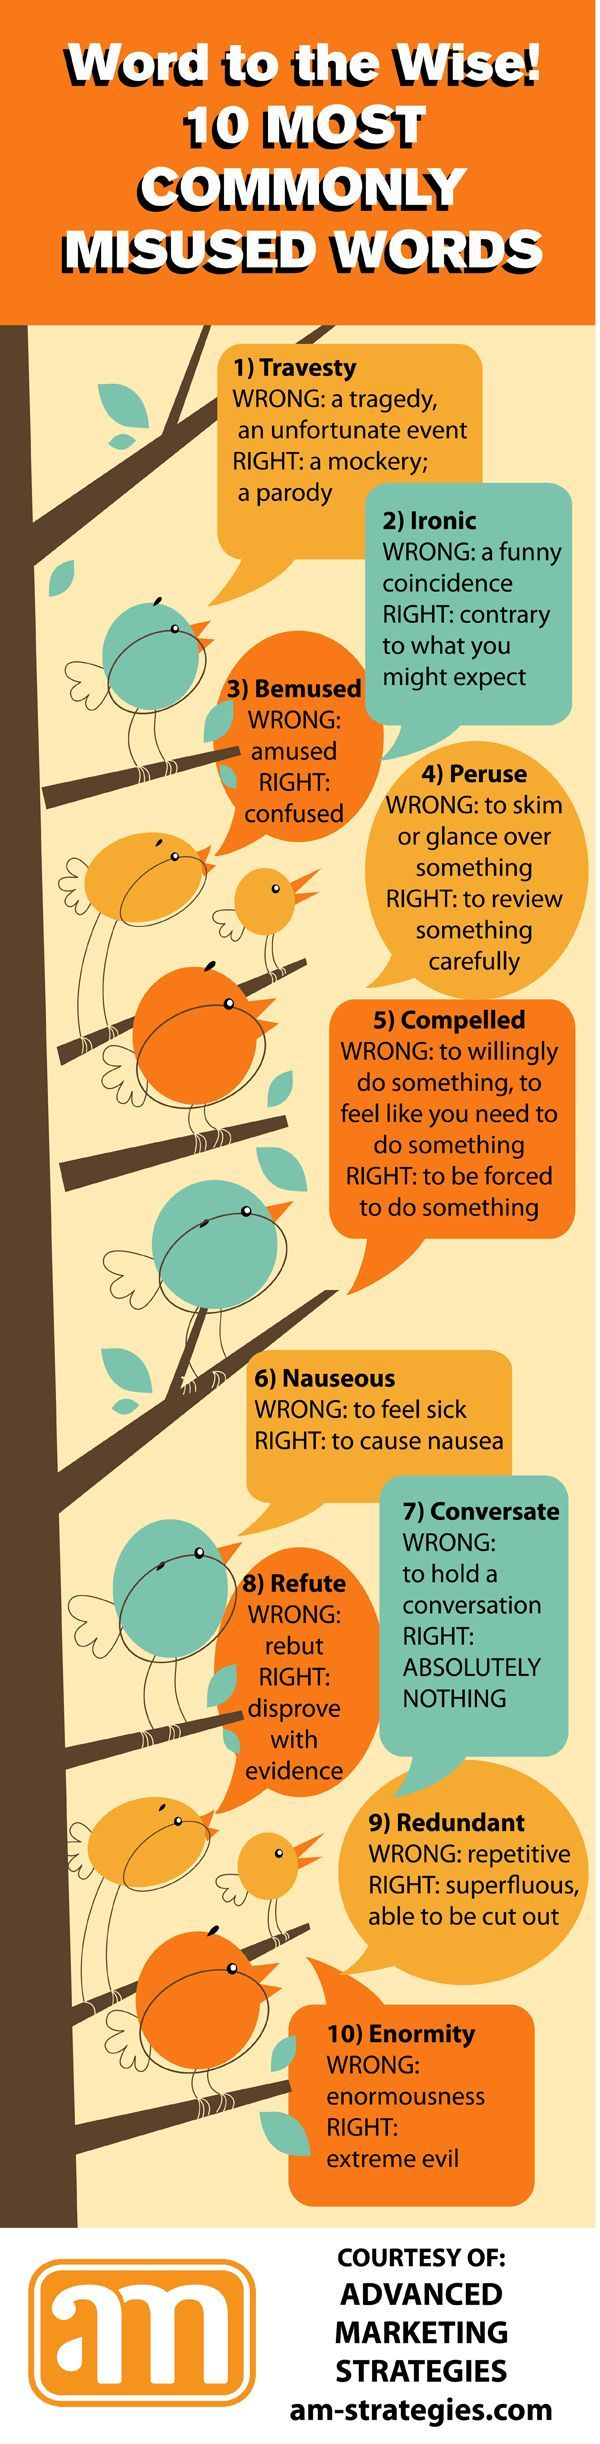 10 commonly misused words and cute birdies to make ignorance of them less painful.